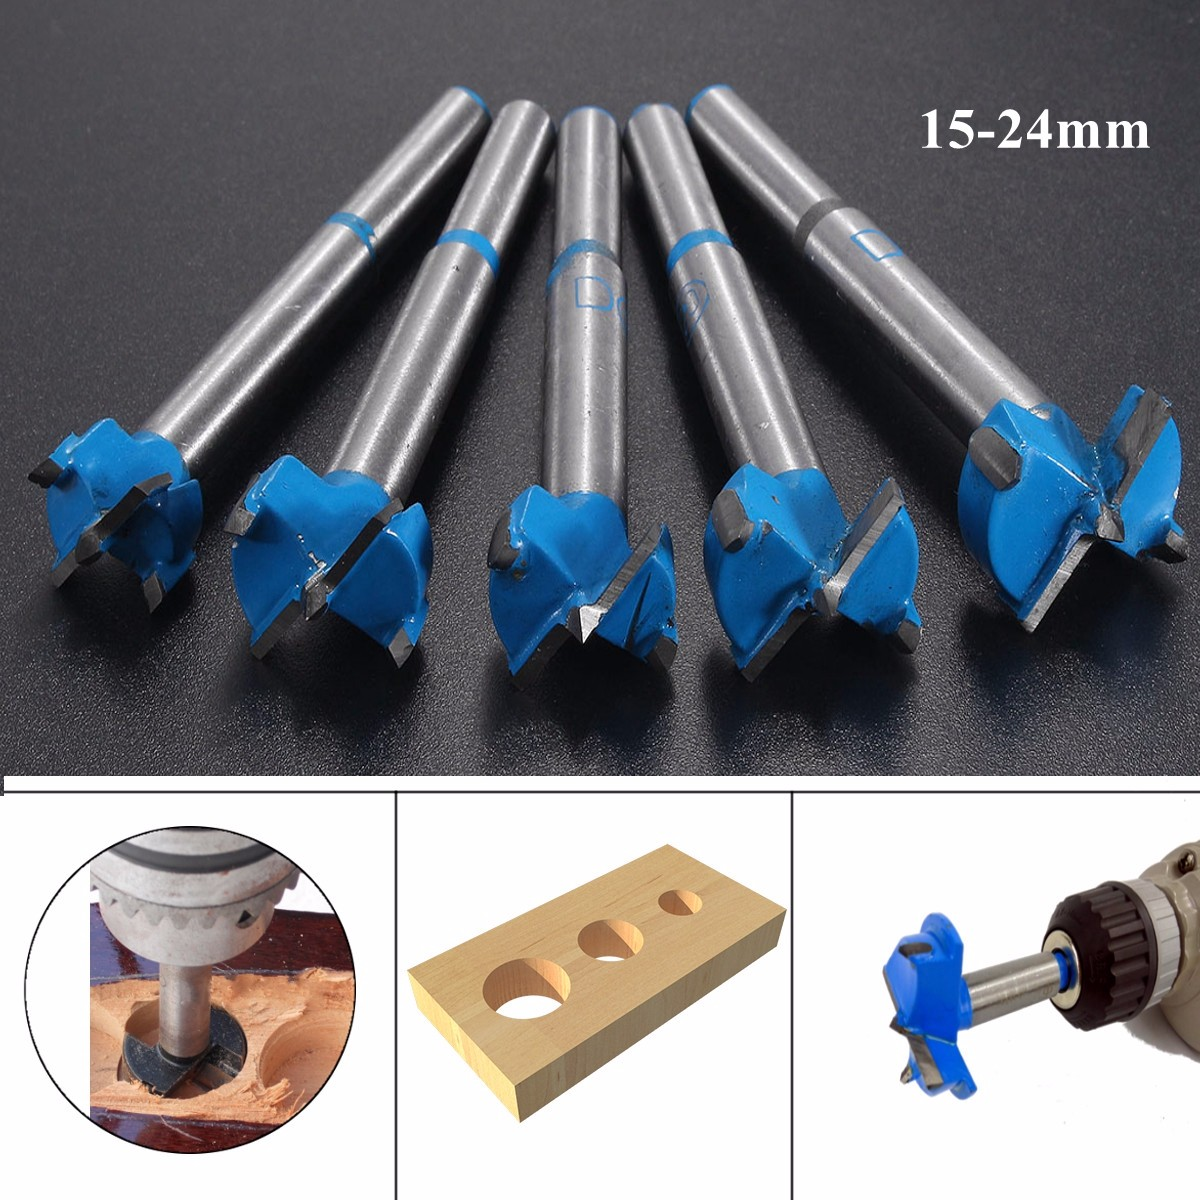 15-24mm Wood Hinge Boring Hole Saw Drill Bit Carbide Cutter Auger Drill Bit